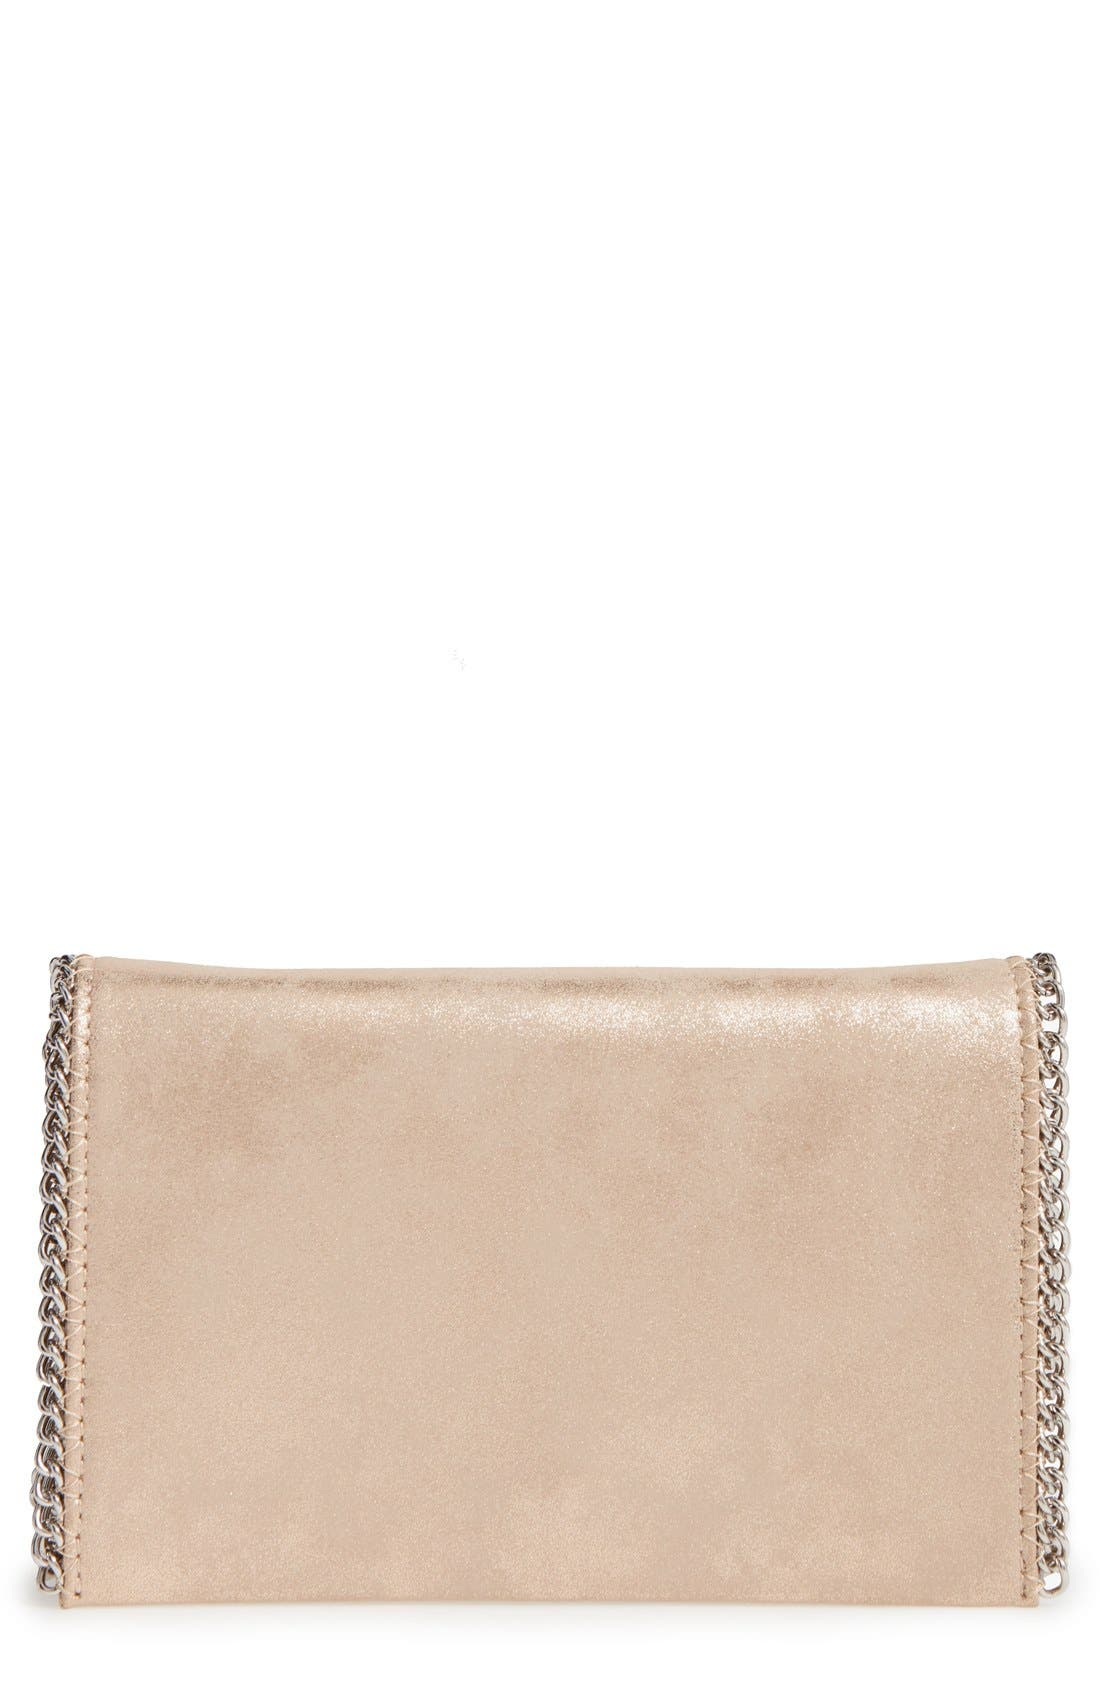 Chelsea28 Faux Leather Crossbody Clutch